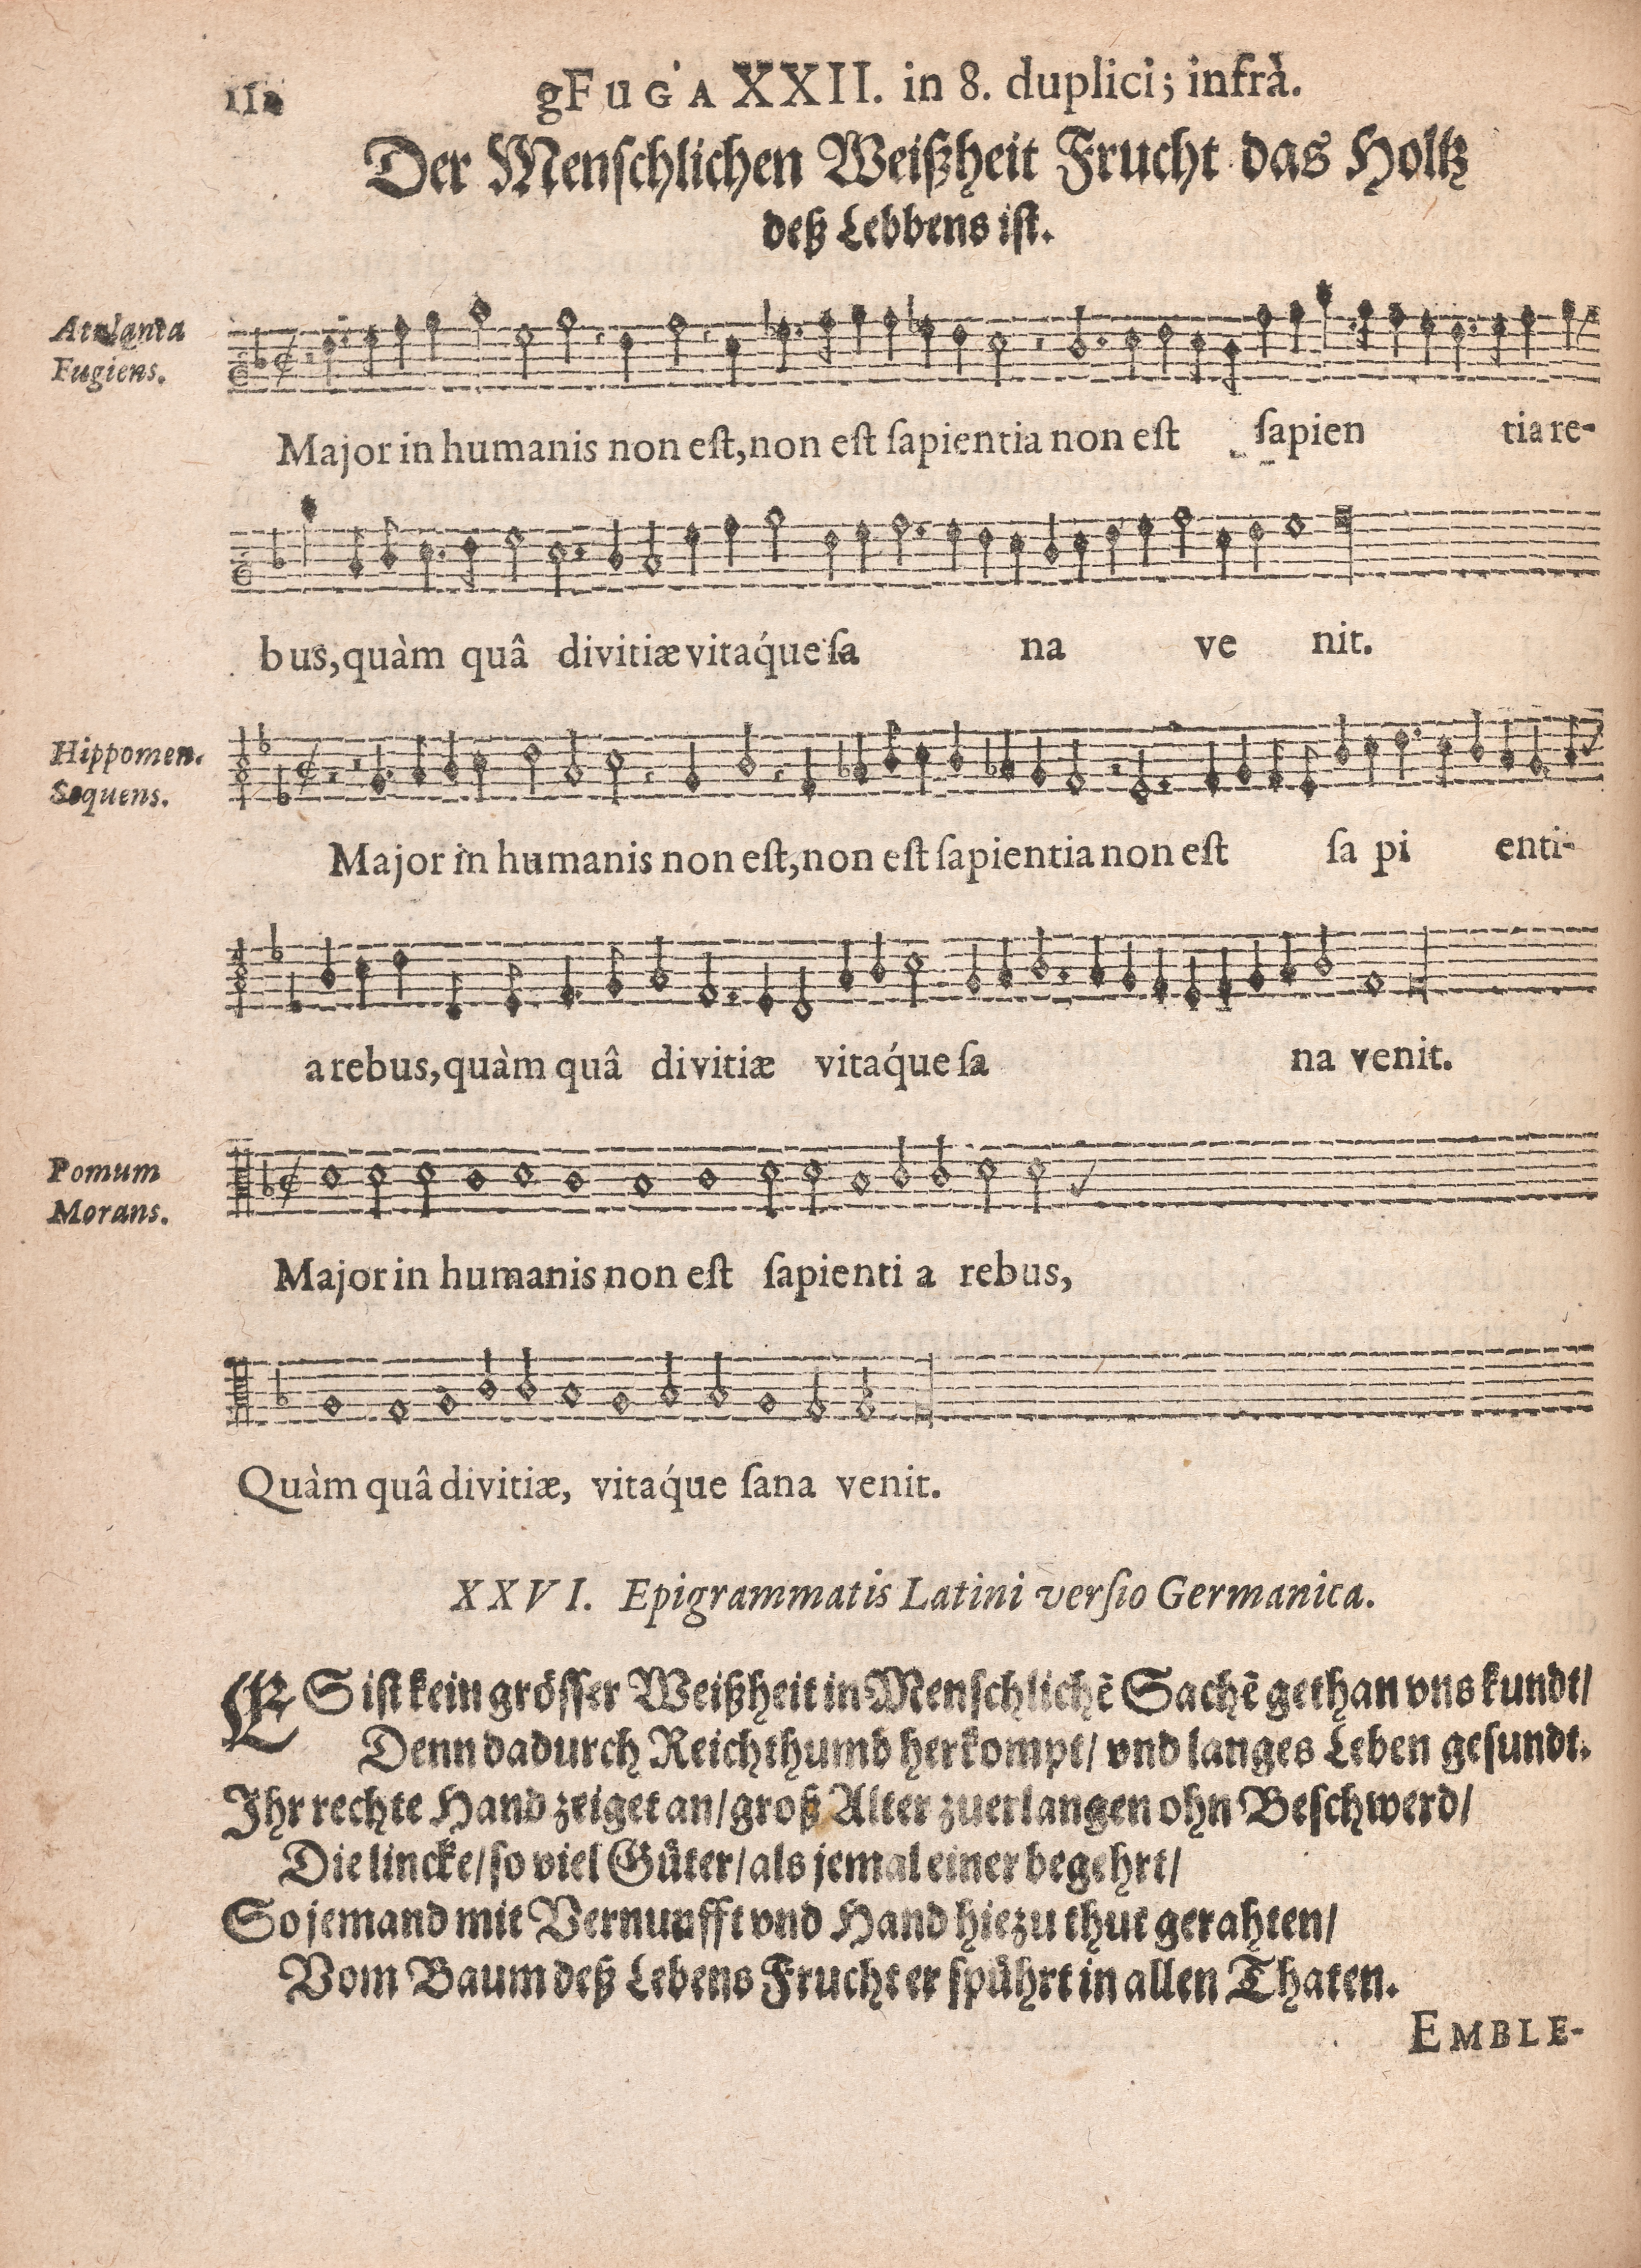 Manuscript page from Emblem 26 of Atalanta fugiens featuring musical notation and a German motto and epigram.